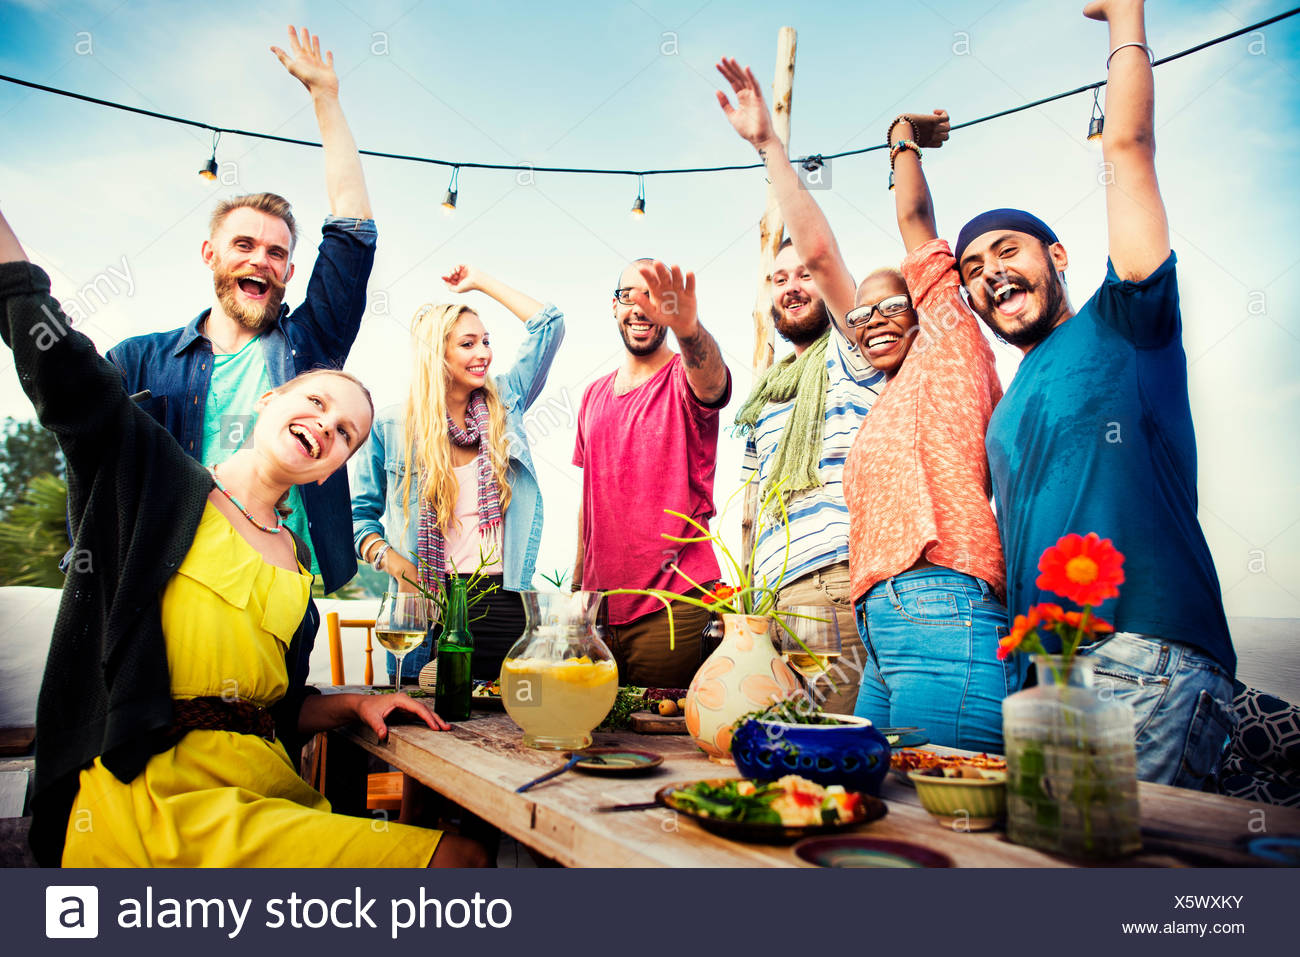 Beach Summer Dinner Party Celebration Concept - Stock Image